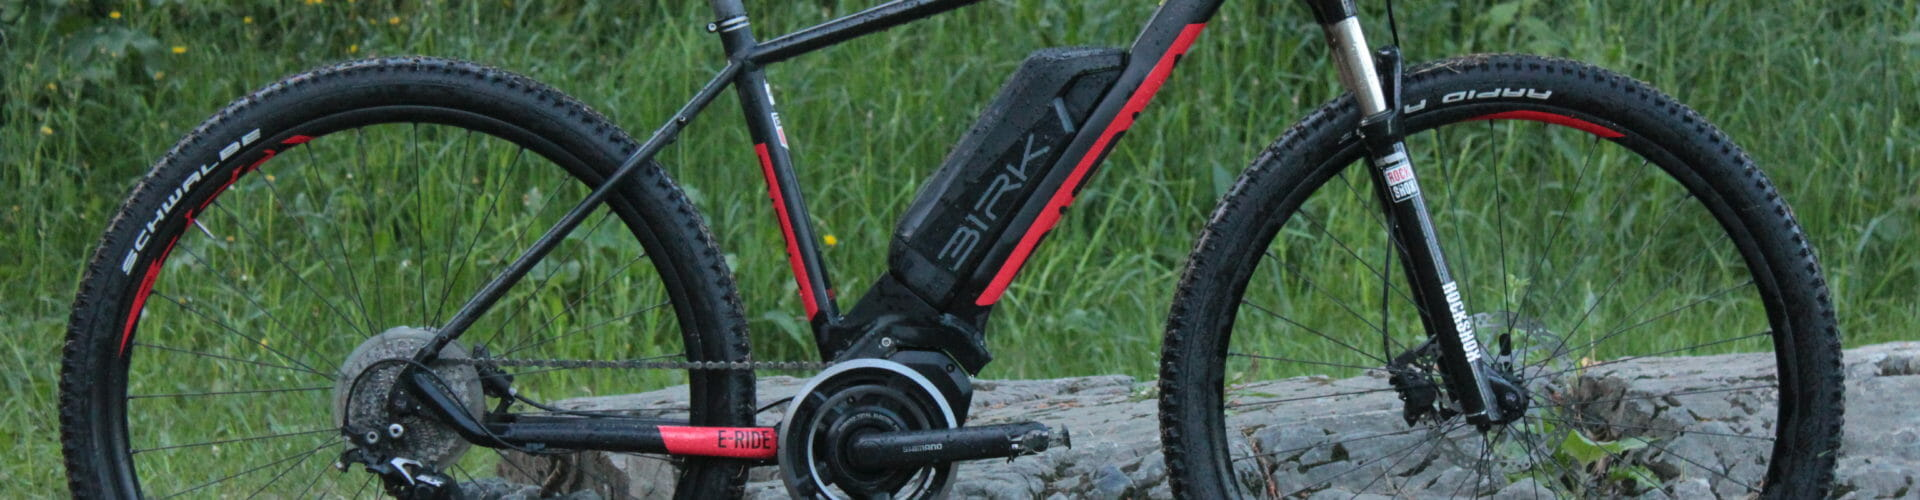 Test av elsykkel: Birk E-Ride